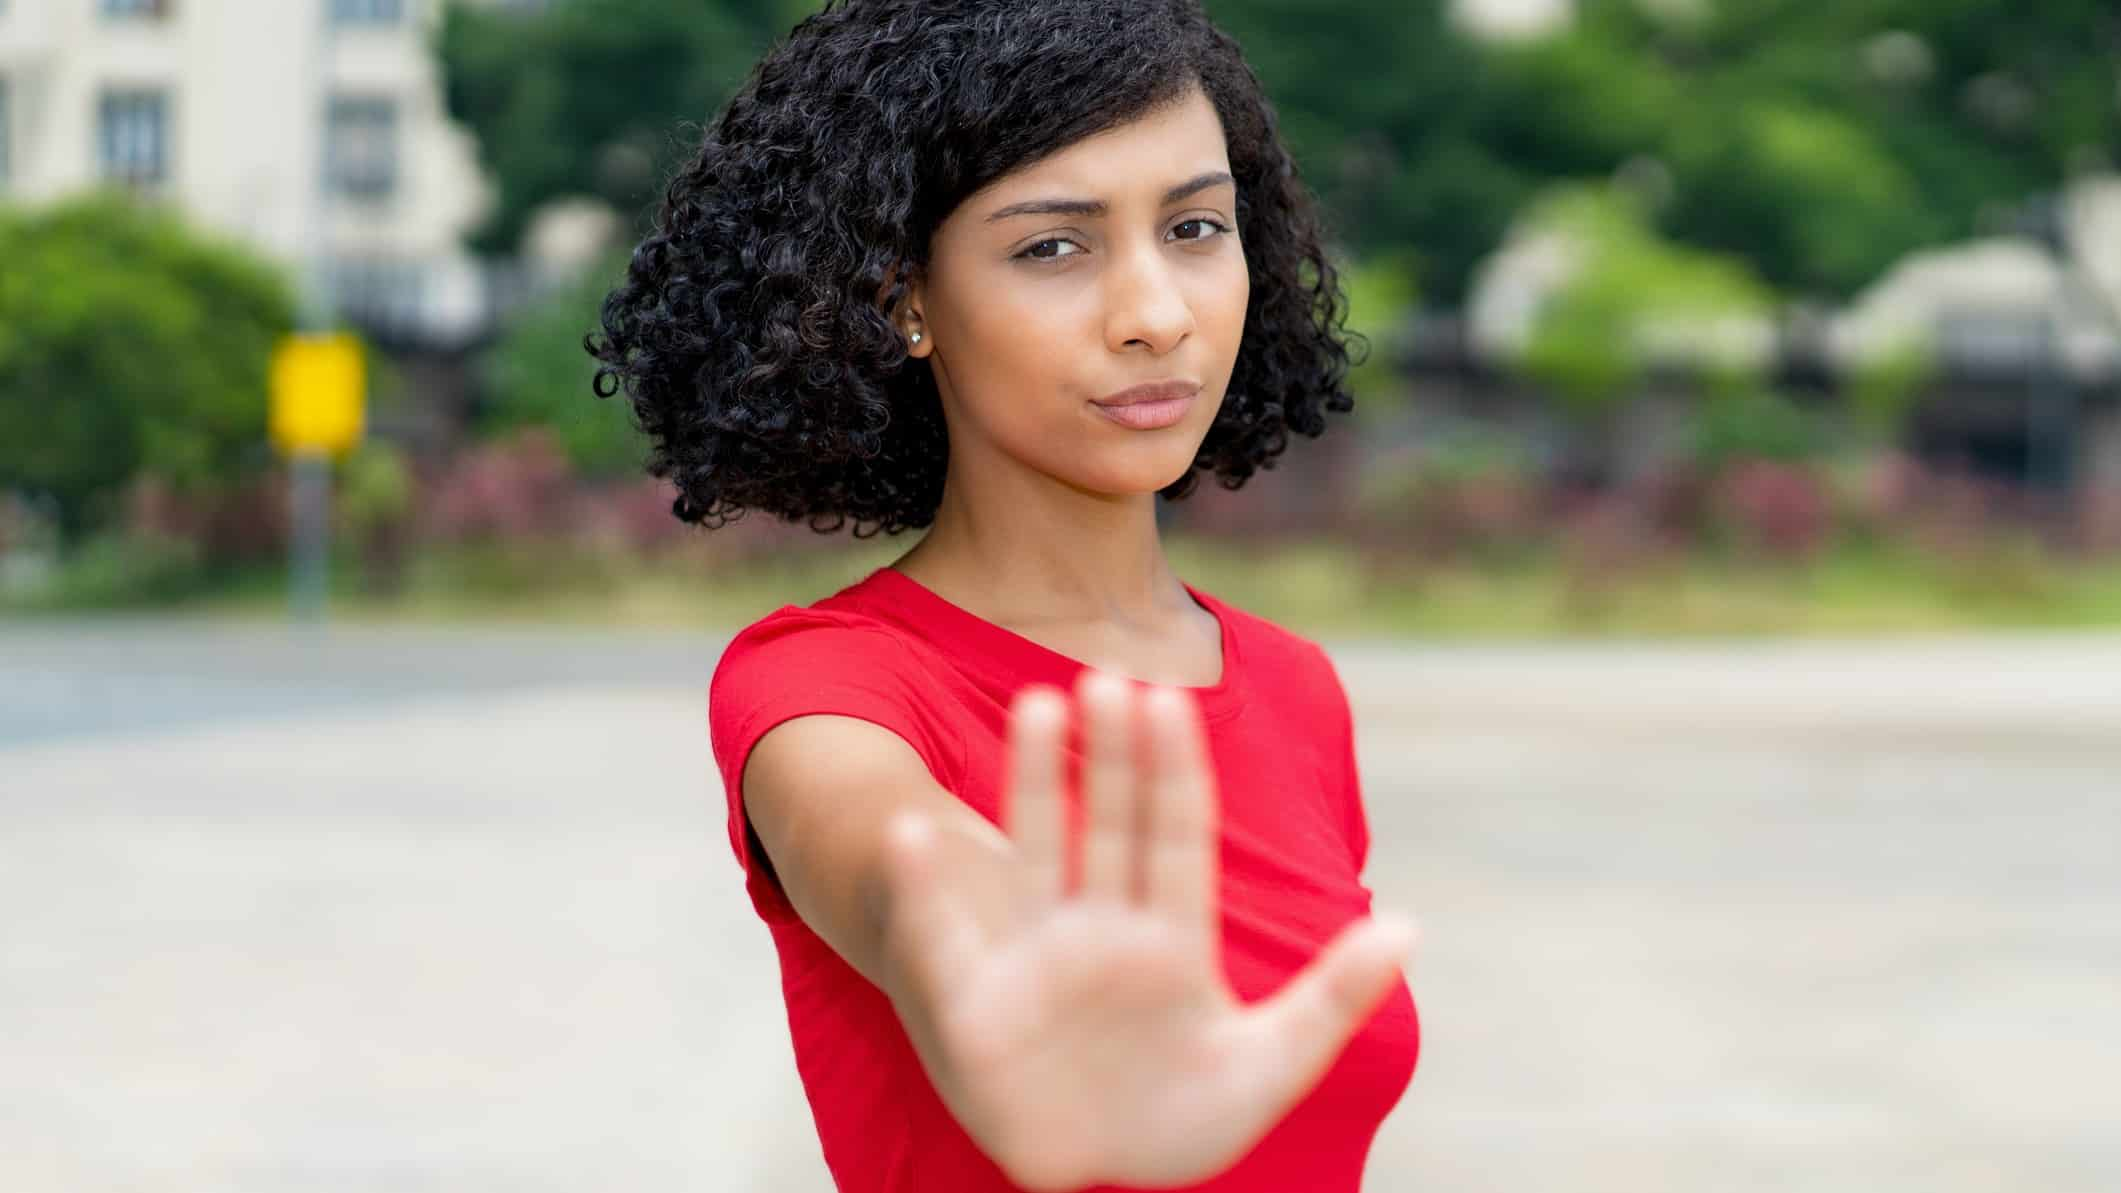 A serious woman put her hand out indicating stop